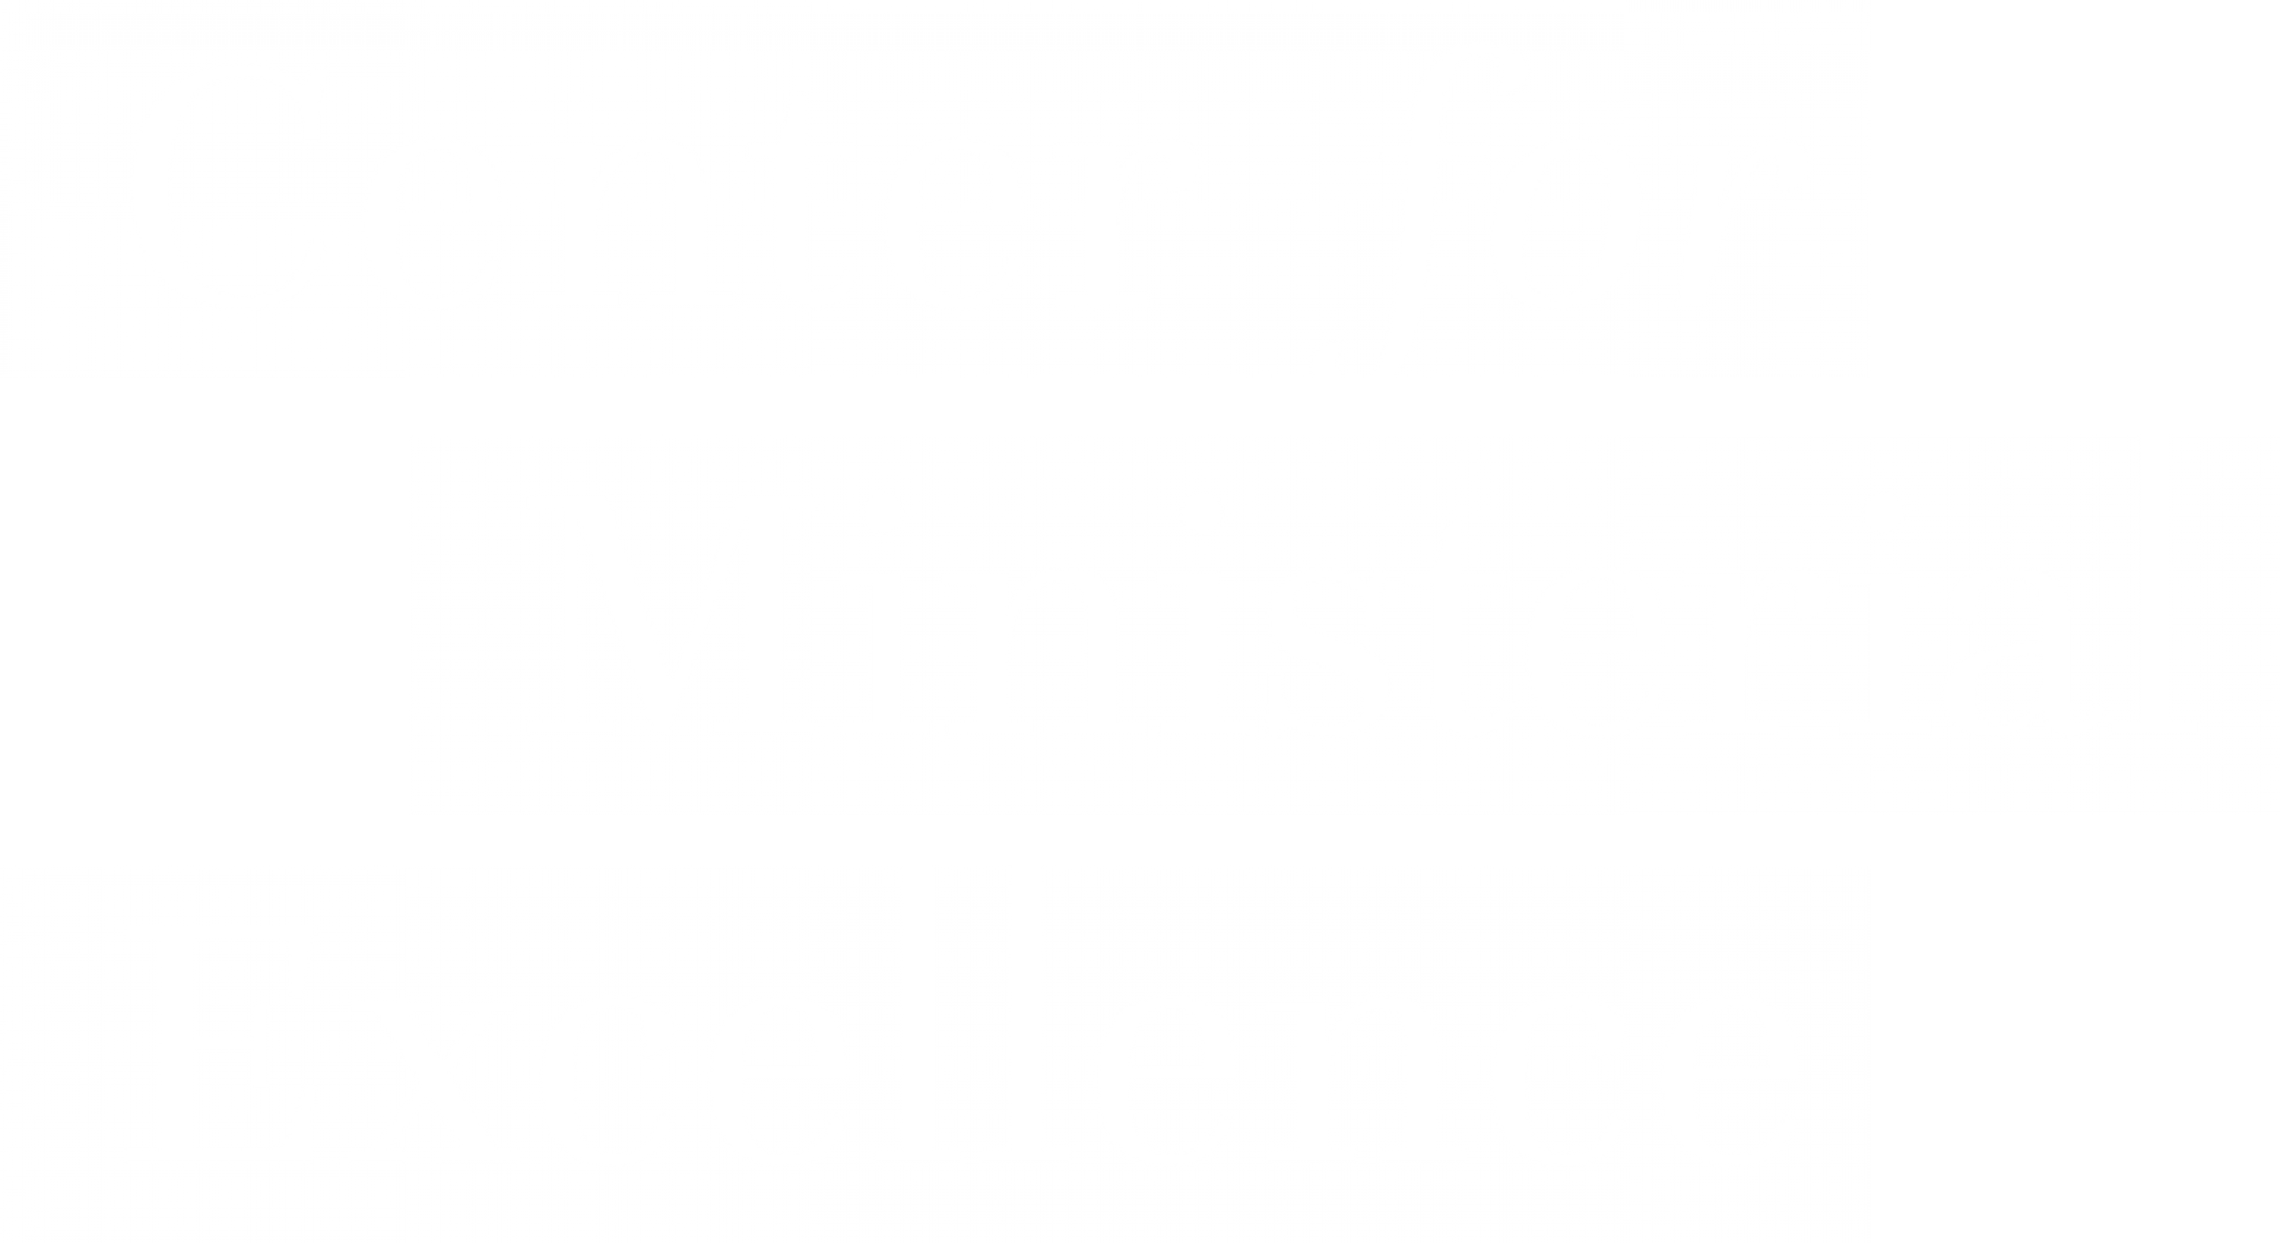 Texas Baptists - Center for Ministerial Excellence